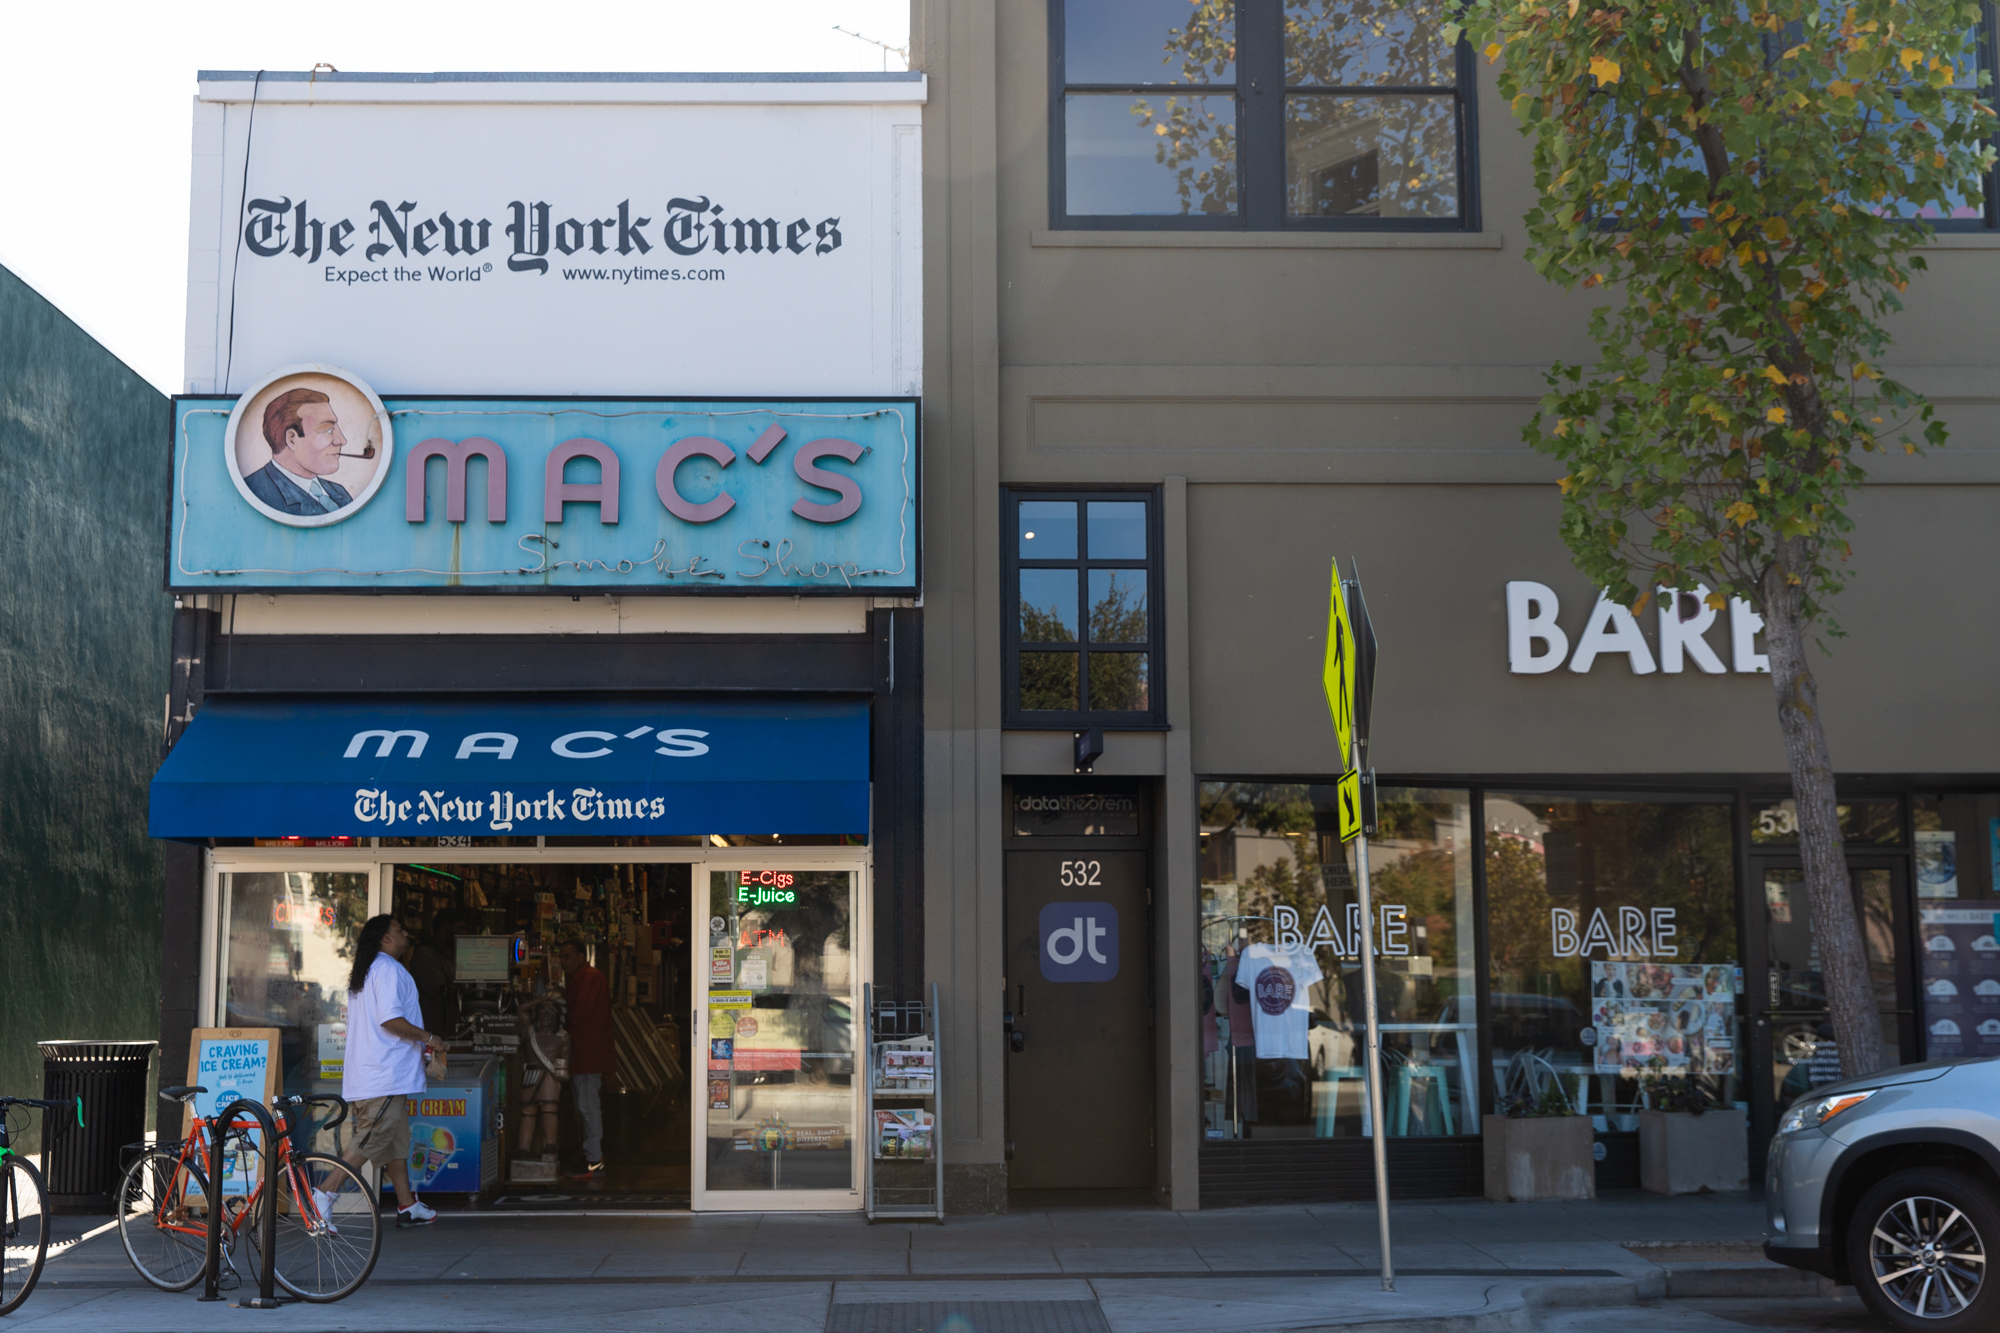 The laid-back Mac's Smoke Shop at 534 Emerson St.sells cigars, hookahs andnewspapers, among other items. Photo by Magali Gauthier.